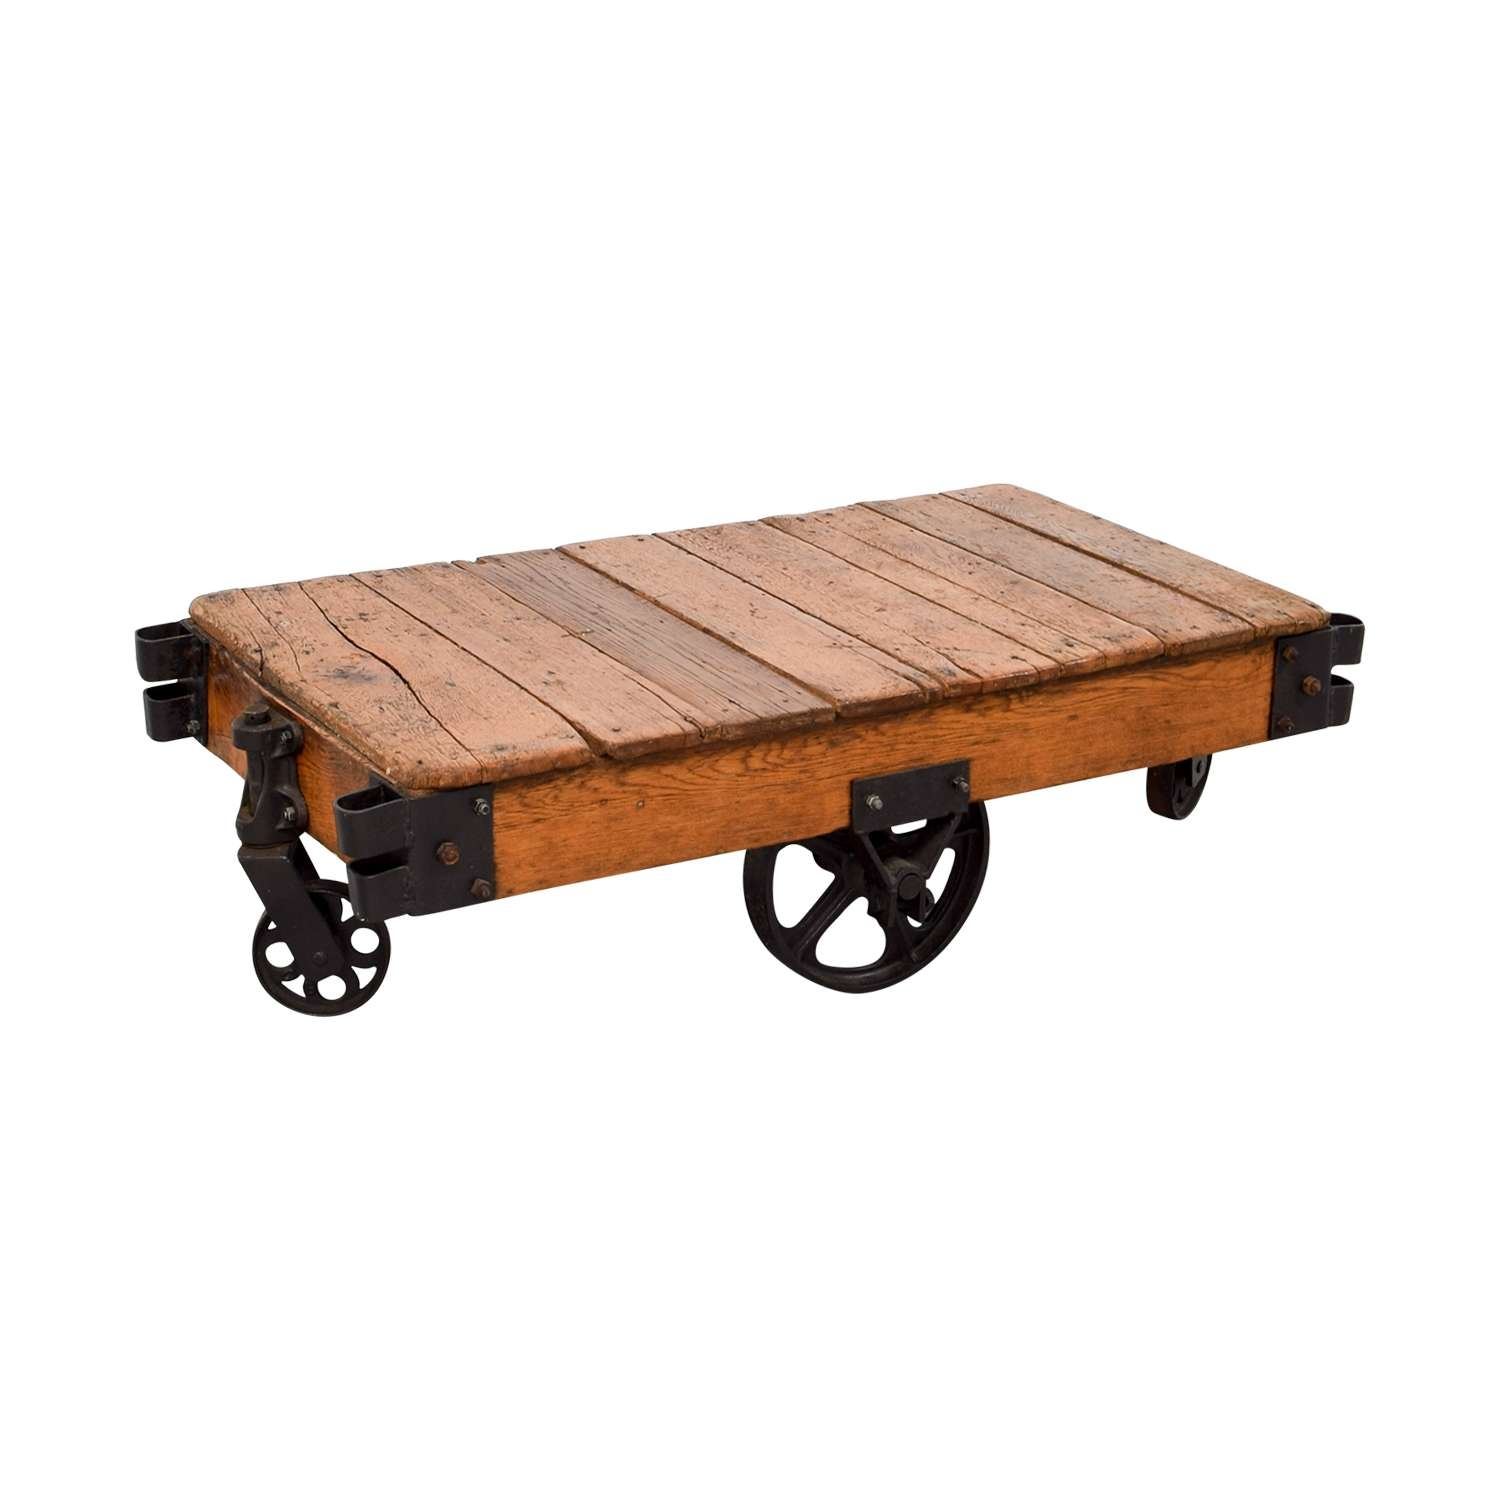 [%2017 Wheels Coffee Tables Pertaining To 49% Off – Restoration Hardware Restoration Hardware Rustic Coffee|49% Off – Restoration Hardware Restoration Hardware Rustic Coffee Intended For Newest Wheels Coffee Tables%] (View 1 of 20)